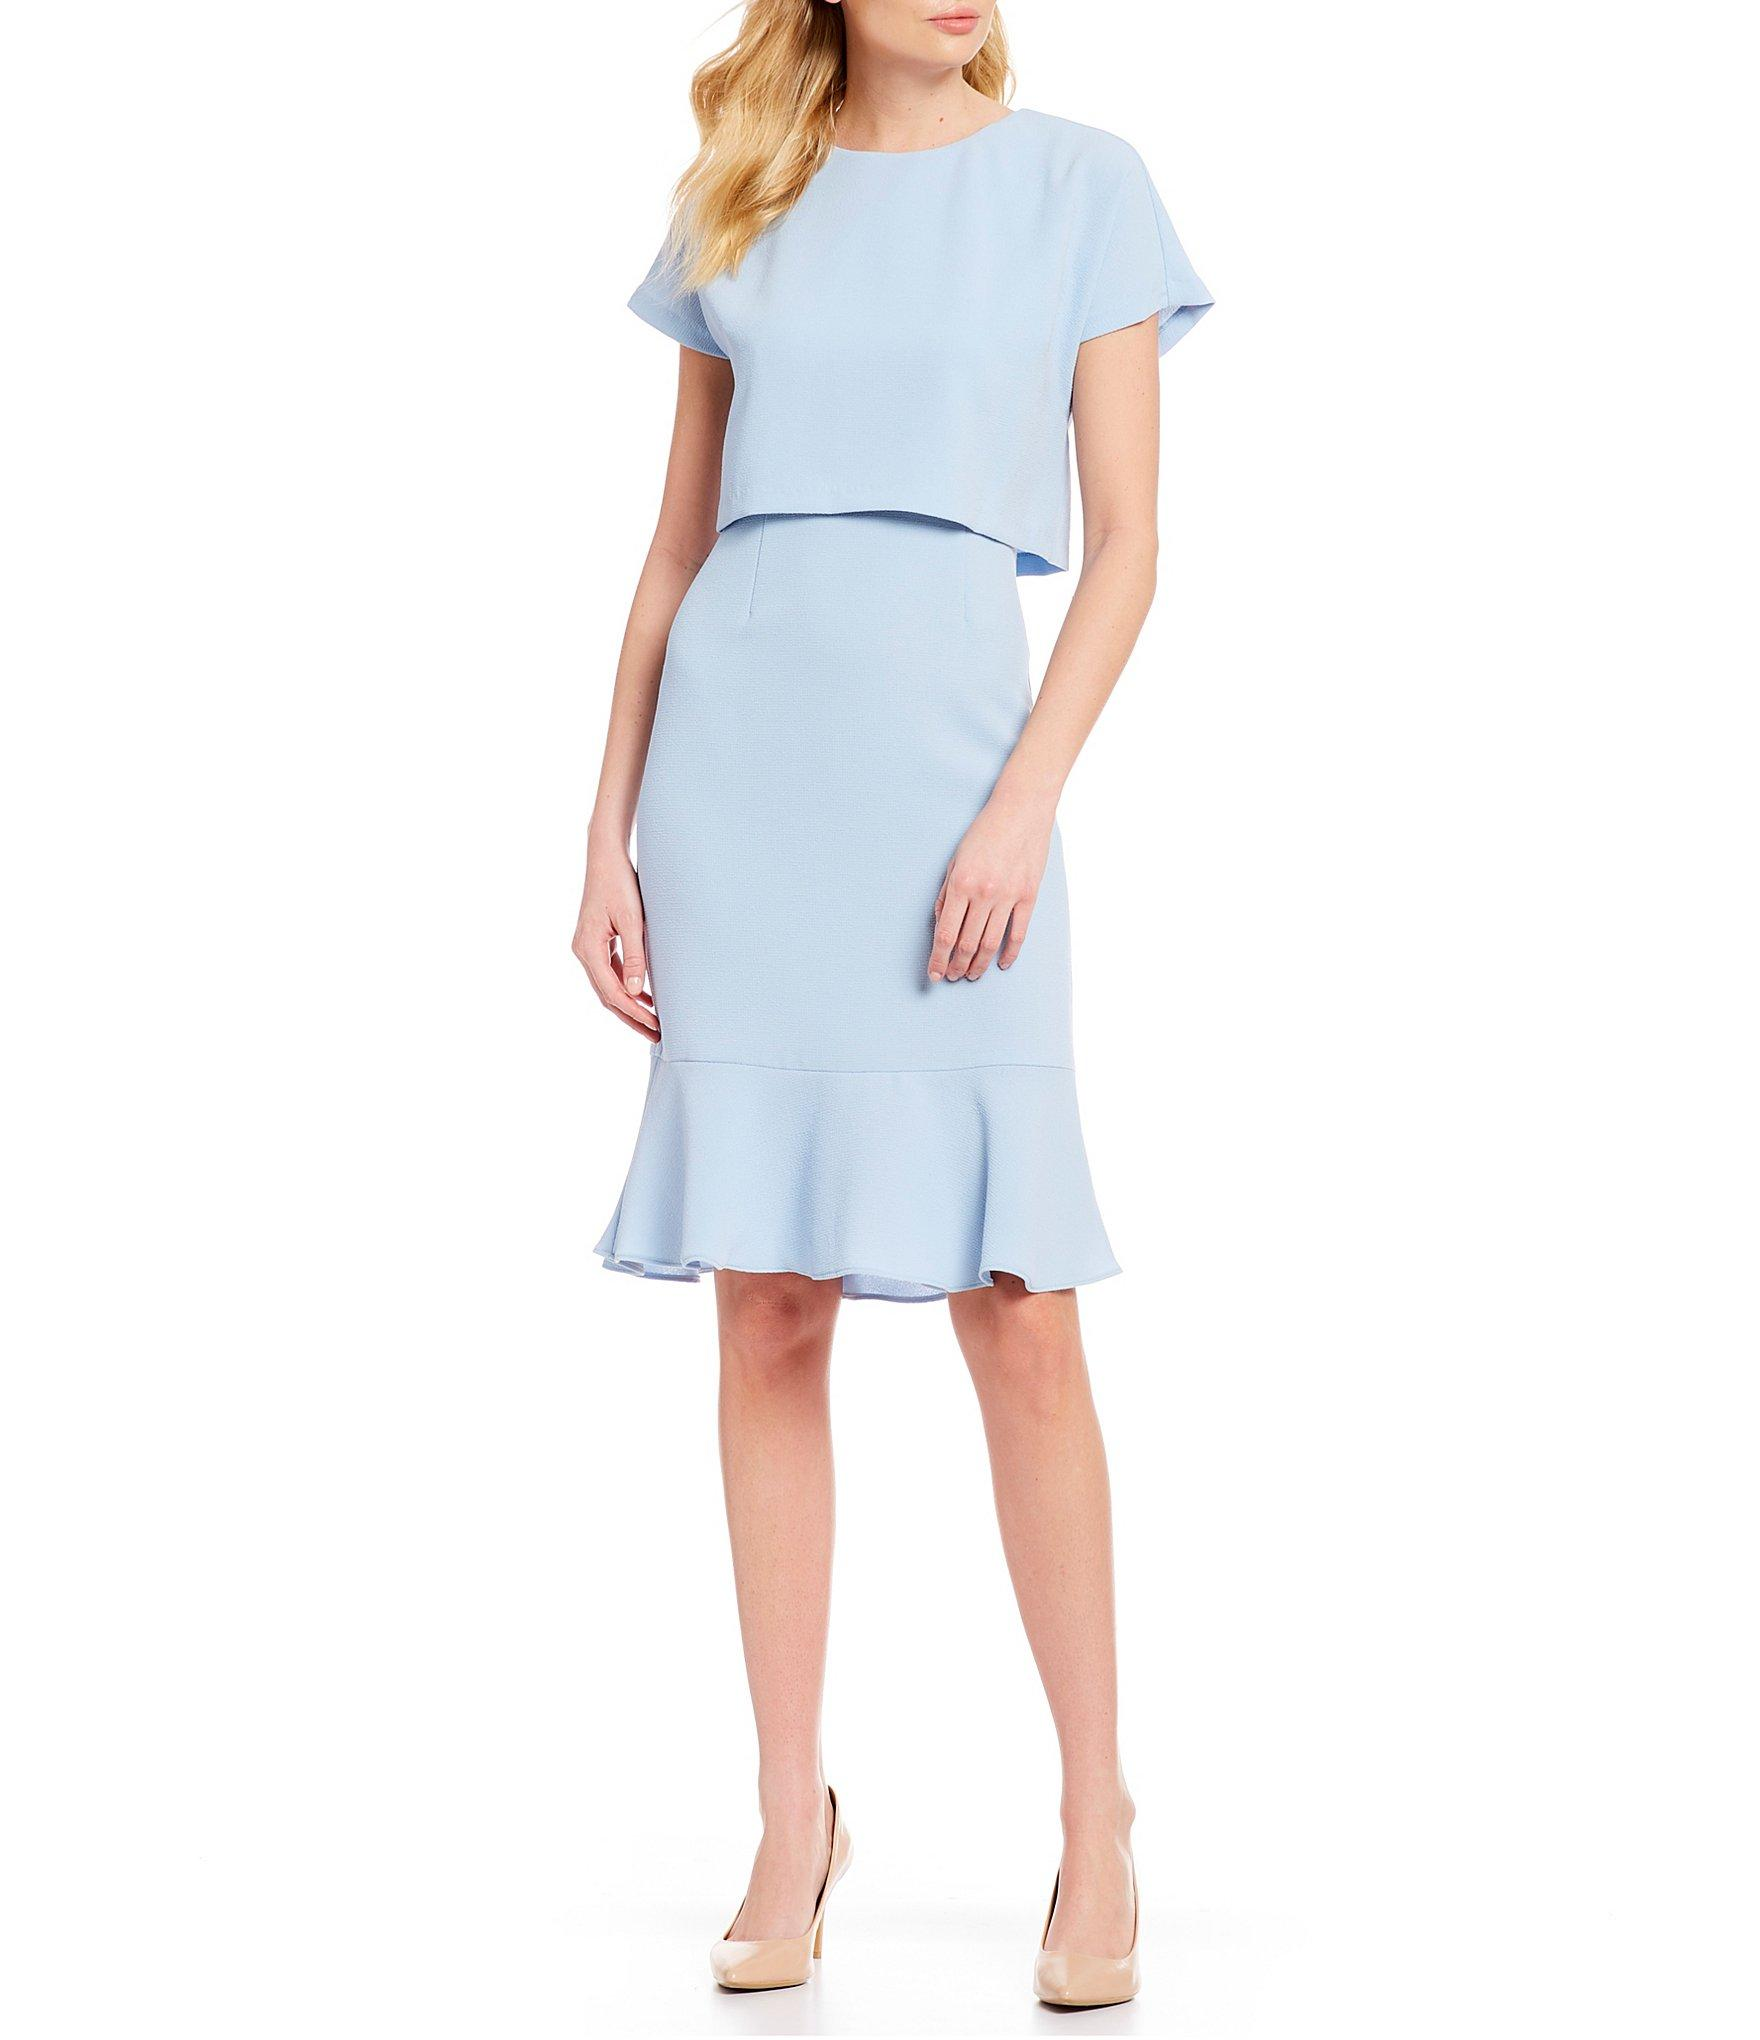 9a6d76654c2 Lyst - Adrianna Papell Popover Flounce Sheath Dress in Blue